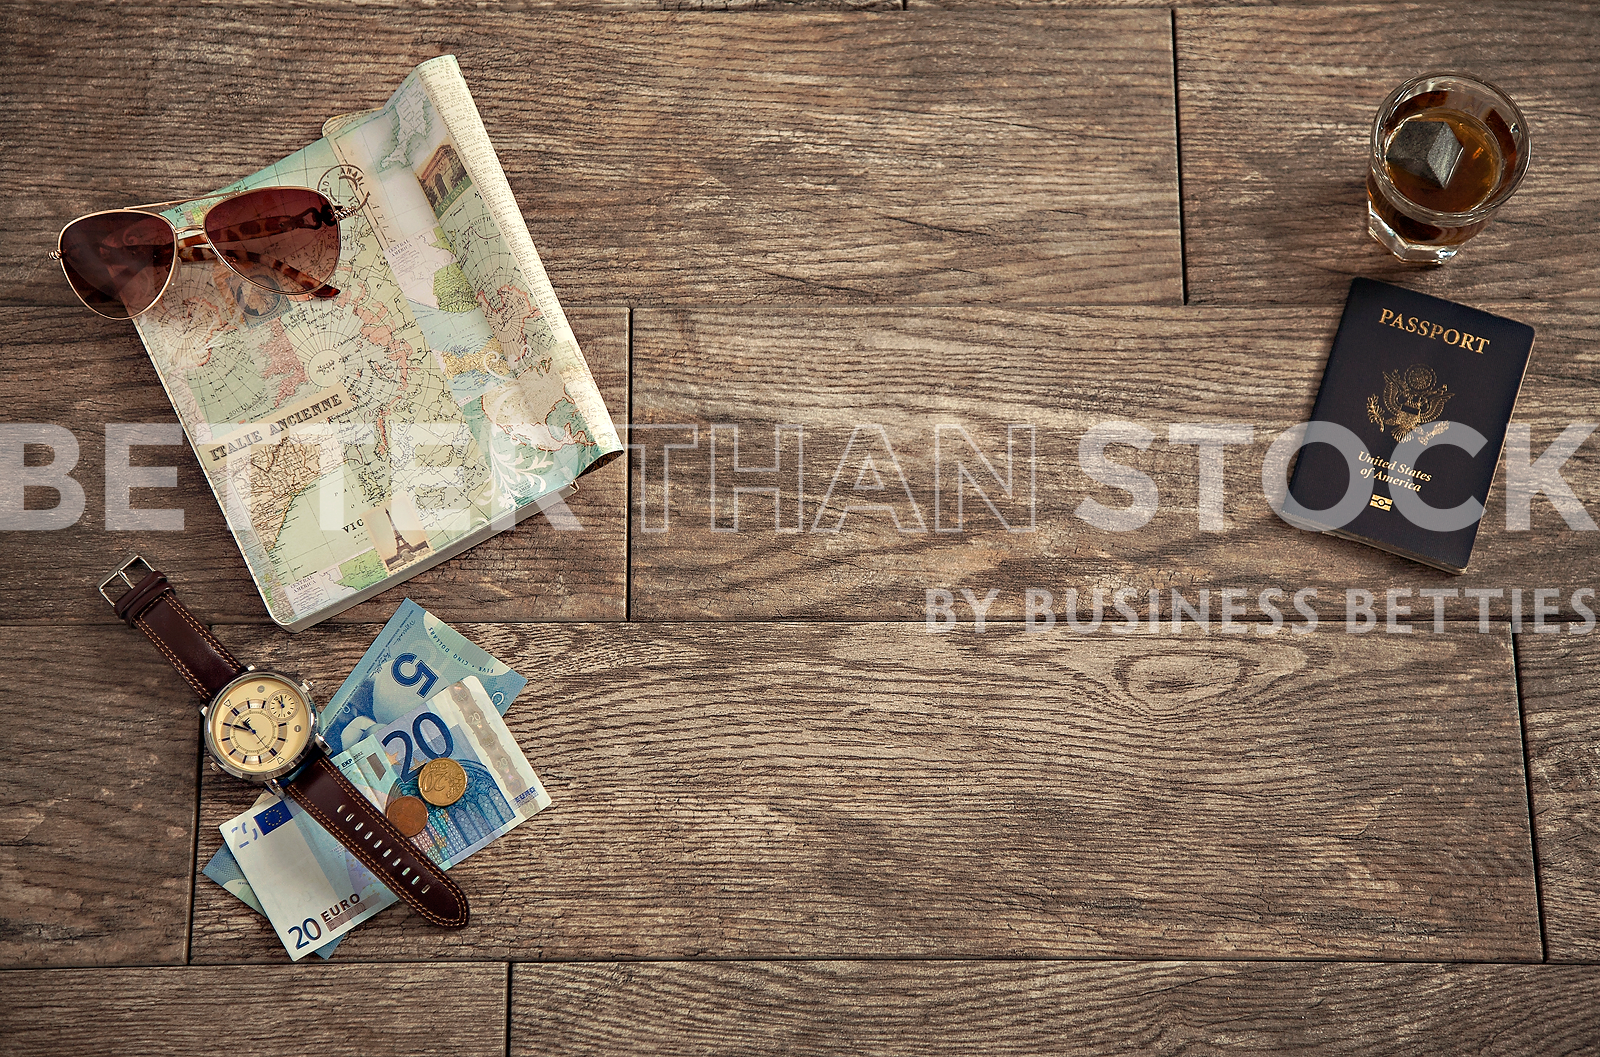 Better Than Stock By Business Betties   In The Mood Styled Desktop Stock Photo Collection